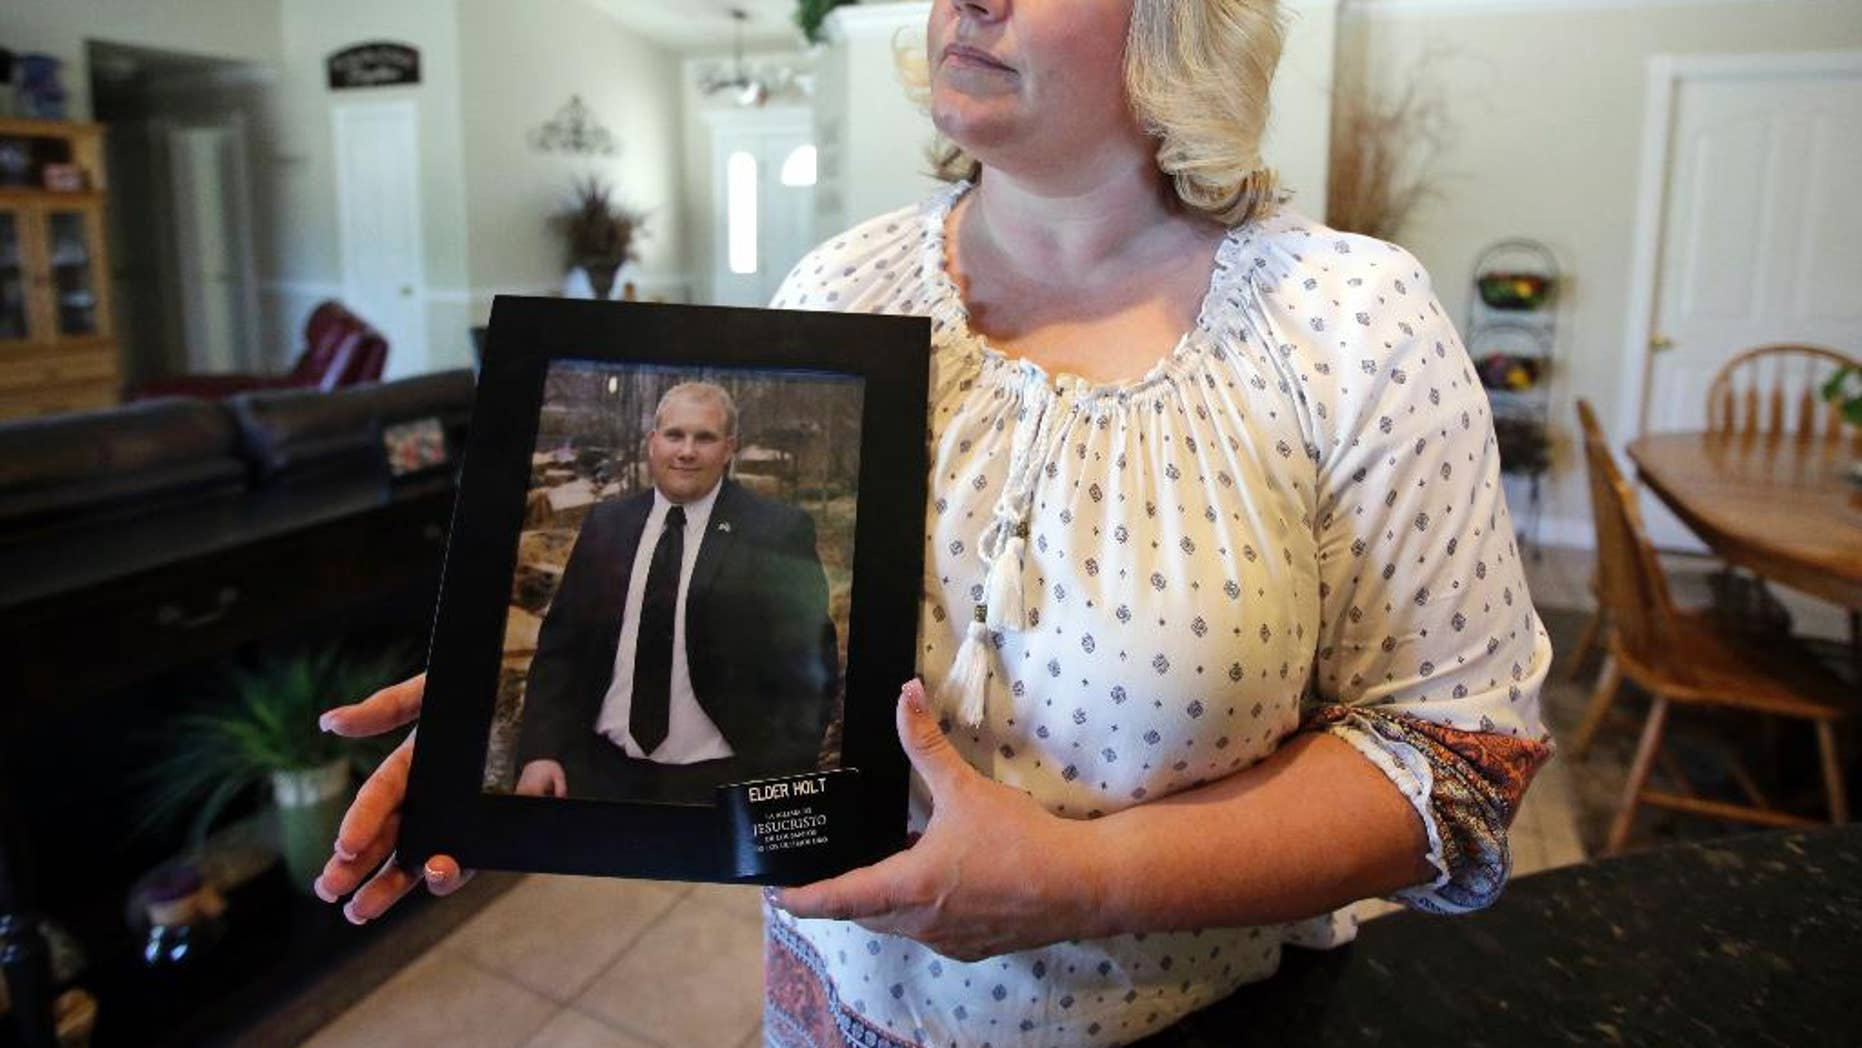 FILE - In this July 13, 2016 file photo, Laurie Holt holds a photograph of her son Joshua Holt at her home, in Riverton, Utah. Joshua Holt jailed in Venezuela since June has had his hopes for being reunited with his family for Christmas all but dashed with the fourth postponement of a preliminary hearing. Judge Elena Cassiani did not appear for a Tuesday, dec. 6, 2016 hearing, in which she was to rule on whether to dismiss the weapons charges against Holt. A new date was set for January. (AP Photo/Rick Bowmer, File)